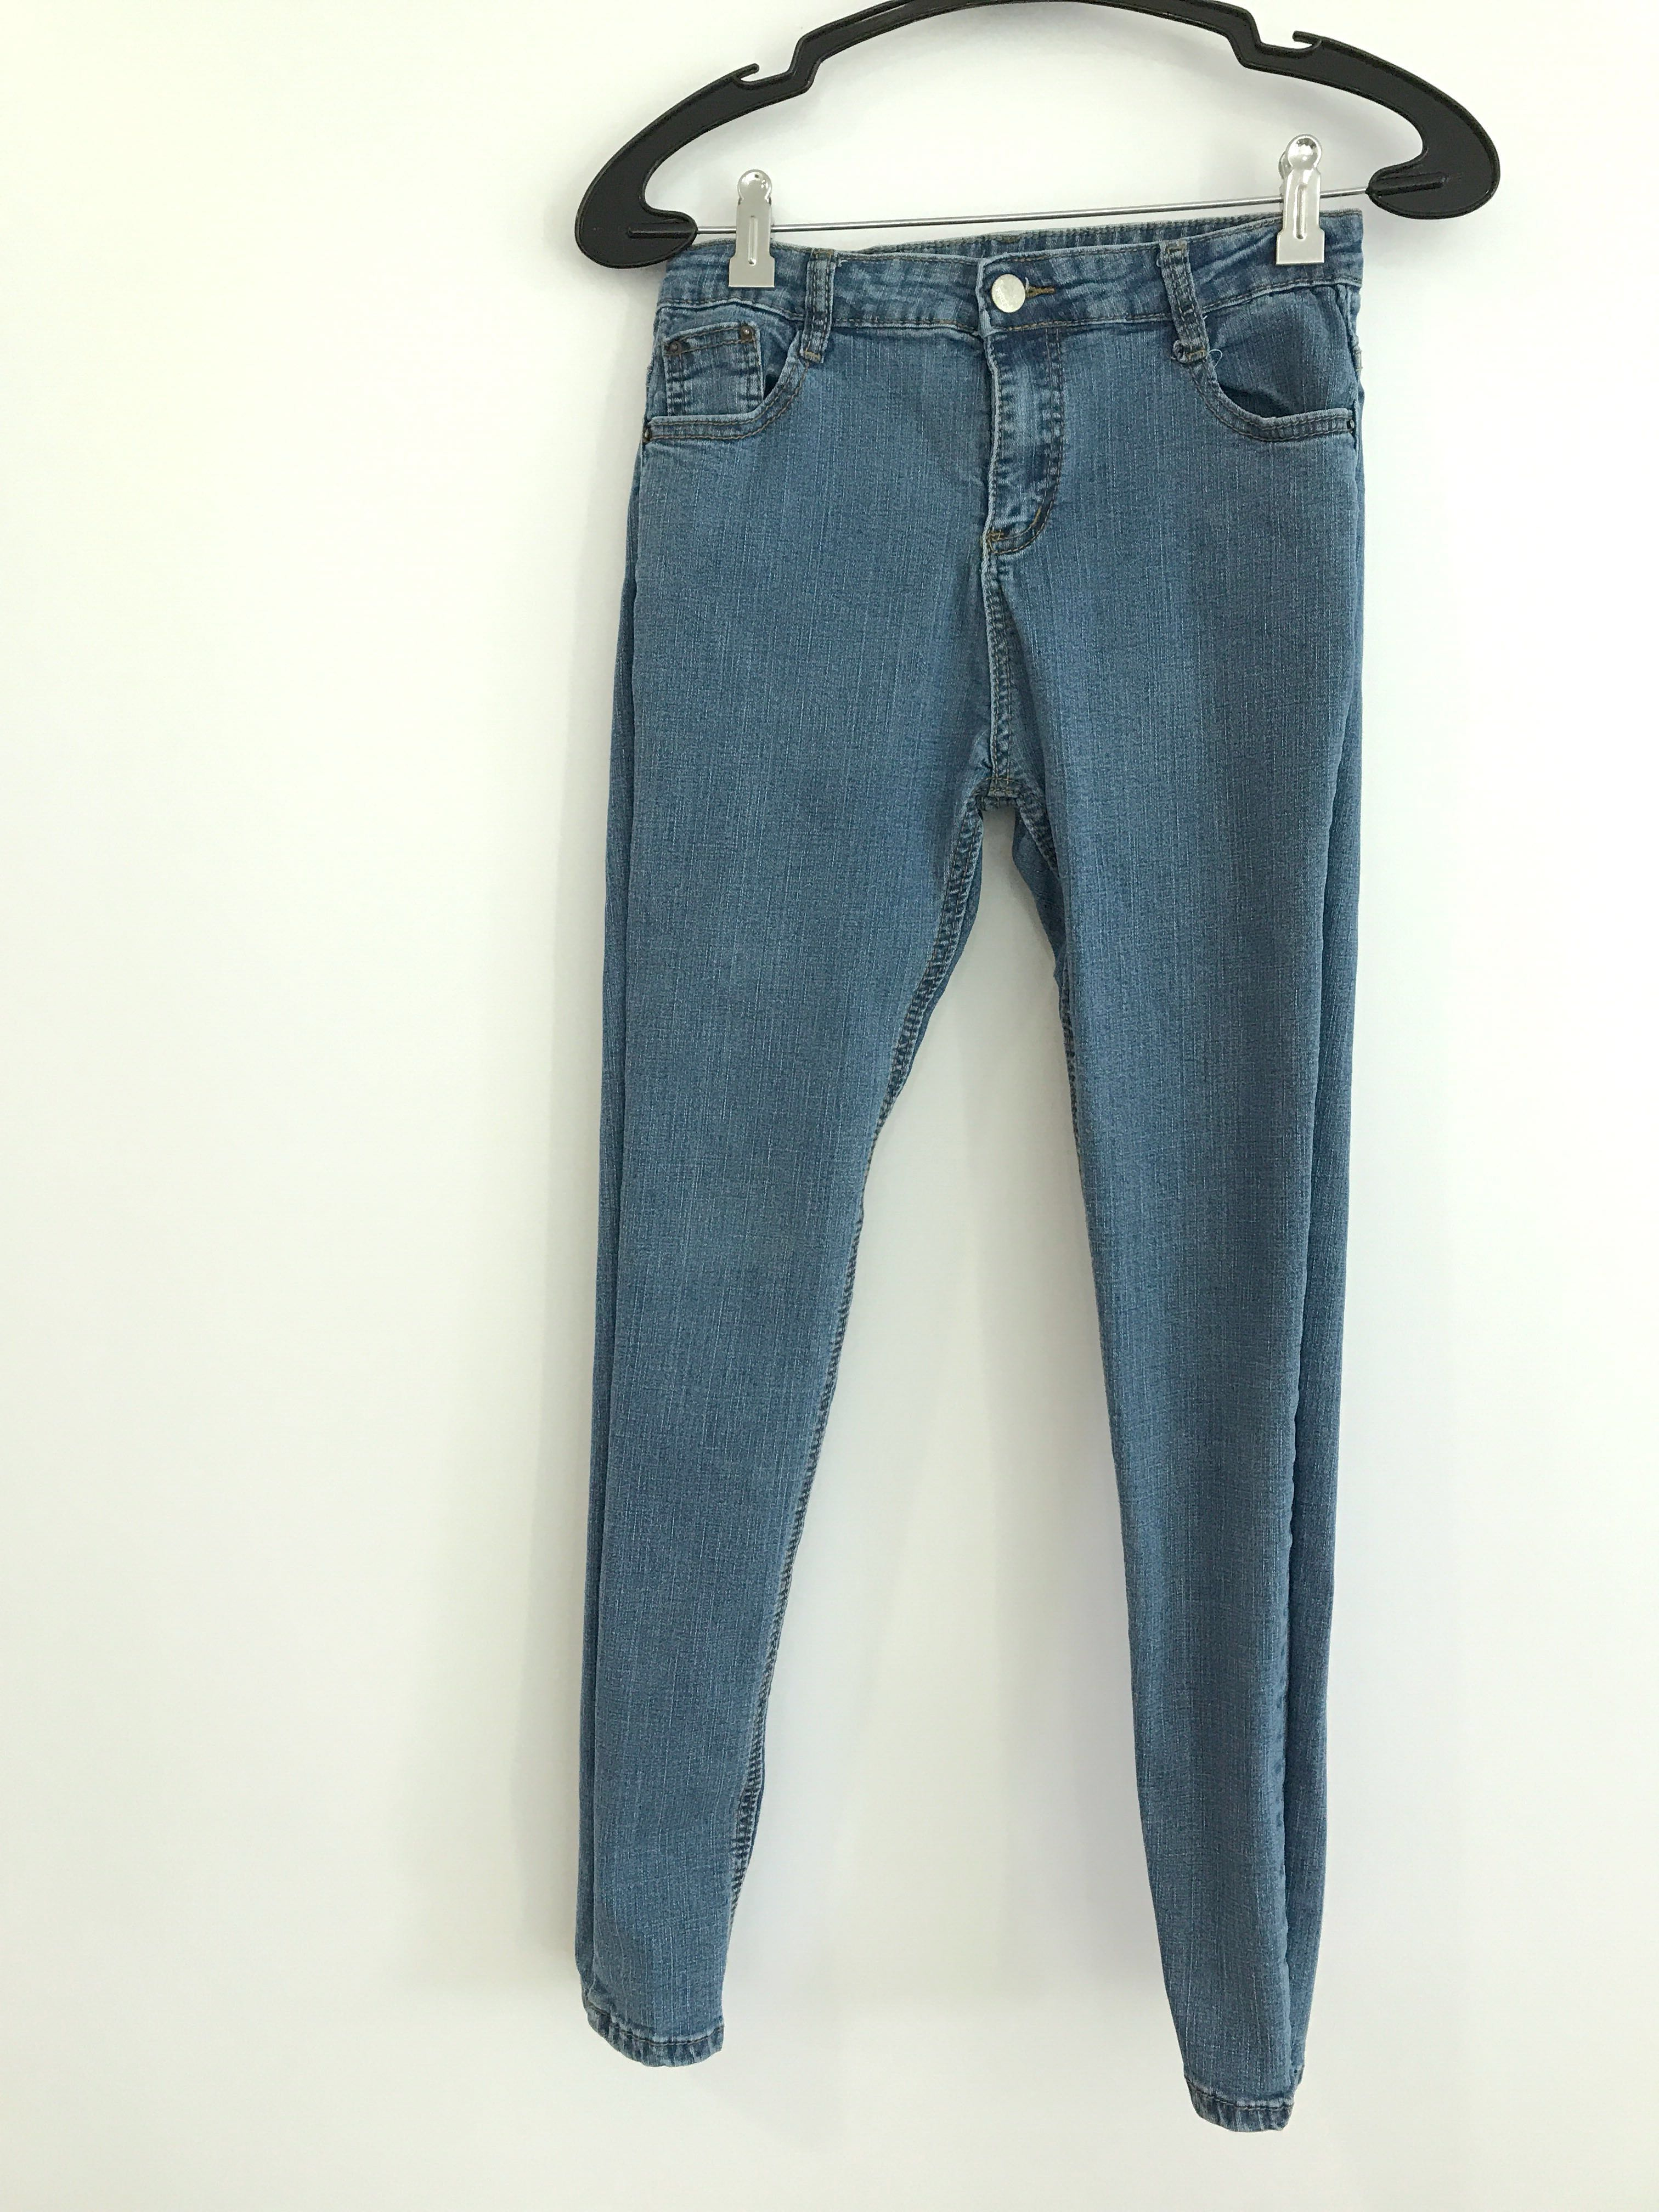 ab496f012b79 Firefly Cropped Slim Cut Jeans, Women's Fashion, Clothes, Pants ...